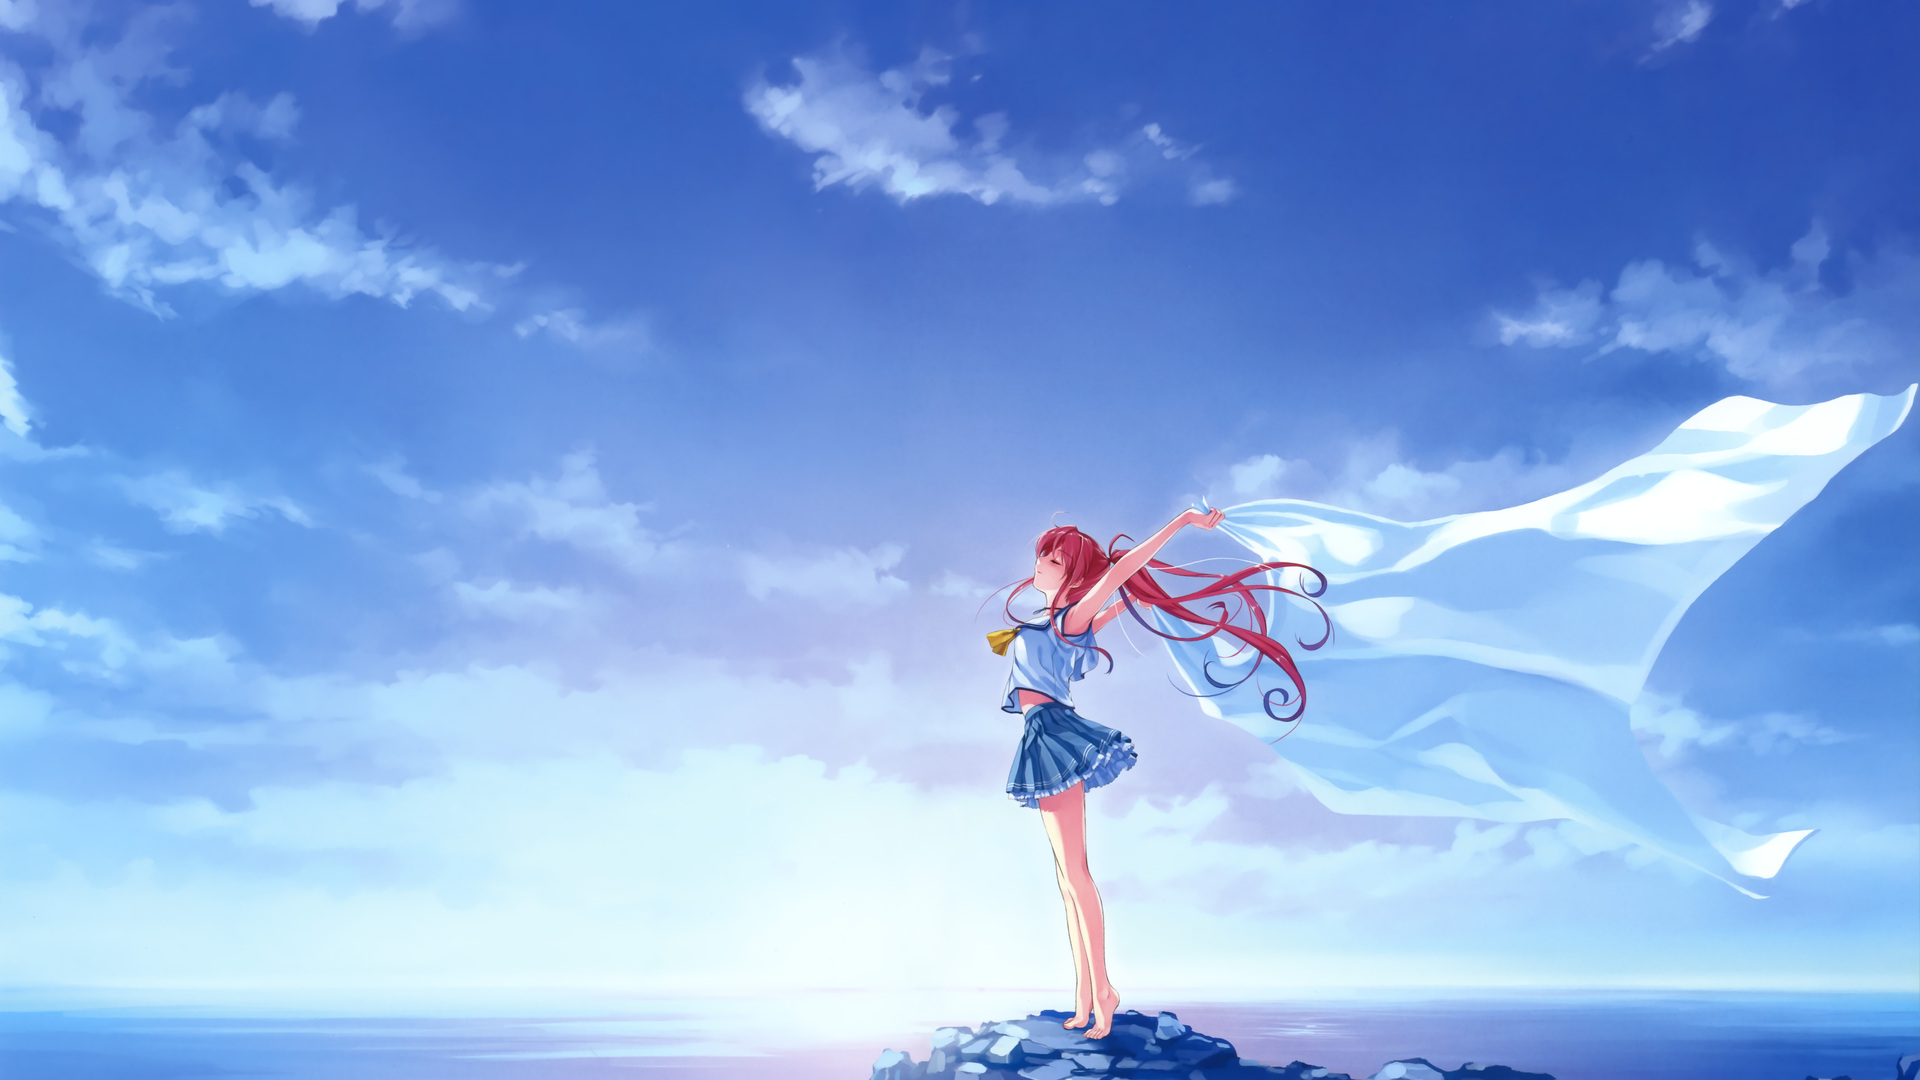 1920x1080 Deep Blue Sky And Pure White Wings Laptop Full